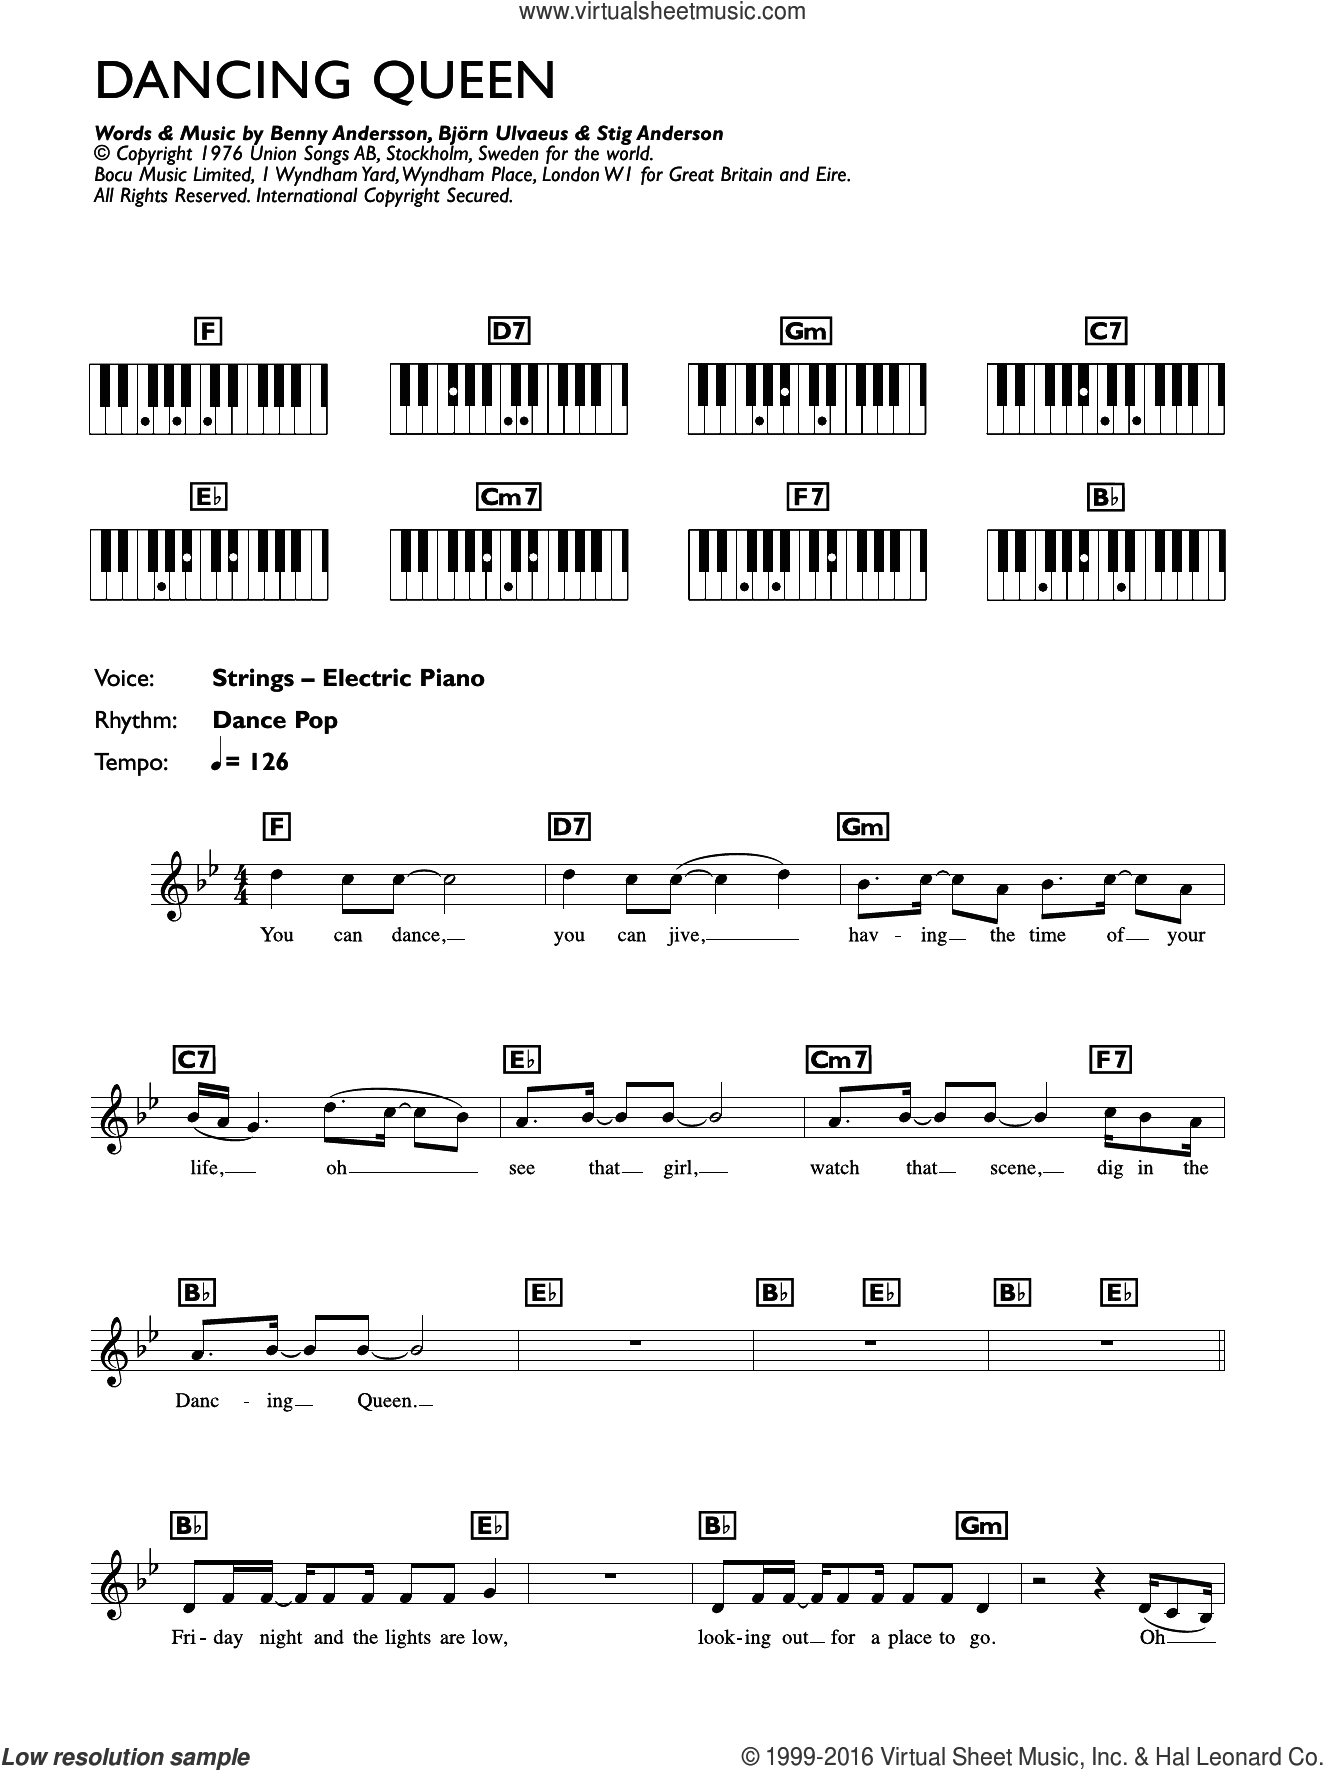 Dancing Queen sheet music for piano solo (chords, lyrics, melody) by Stig Anderson, ABBA, Benny Andersson and Bjorn Ulvaeus. Score Image Preview.